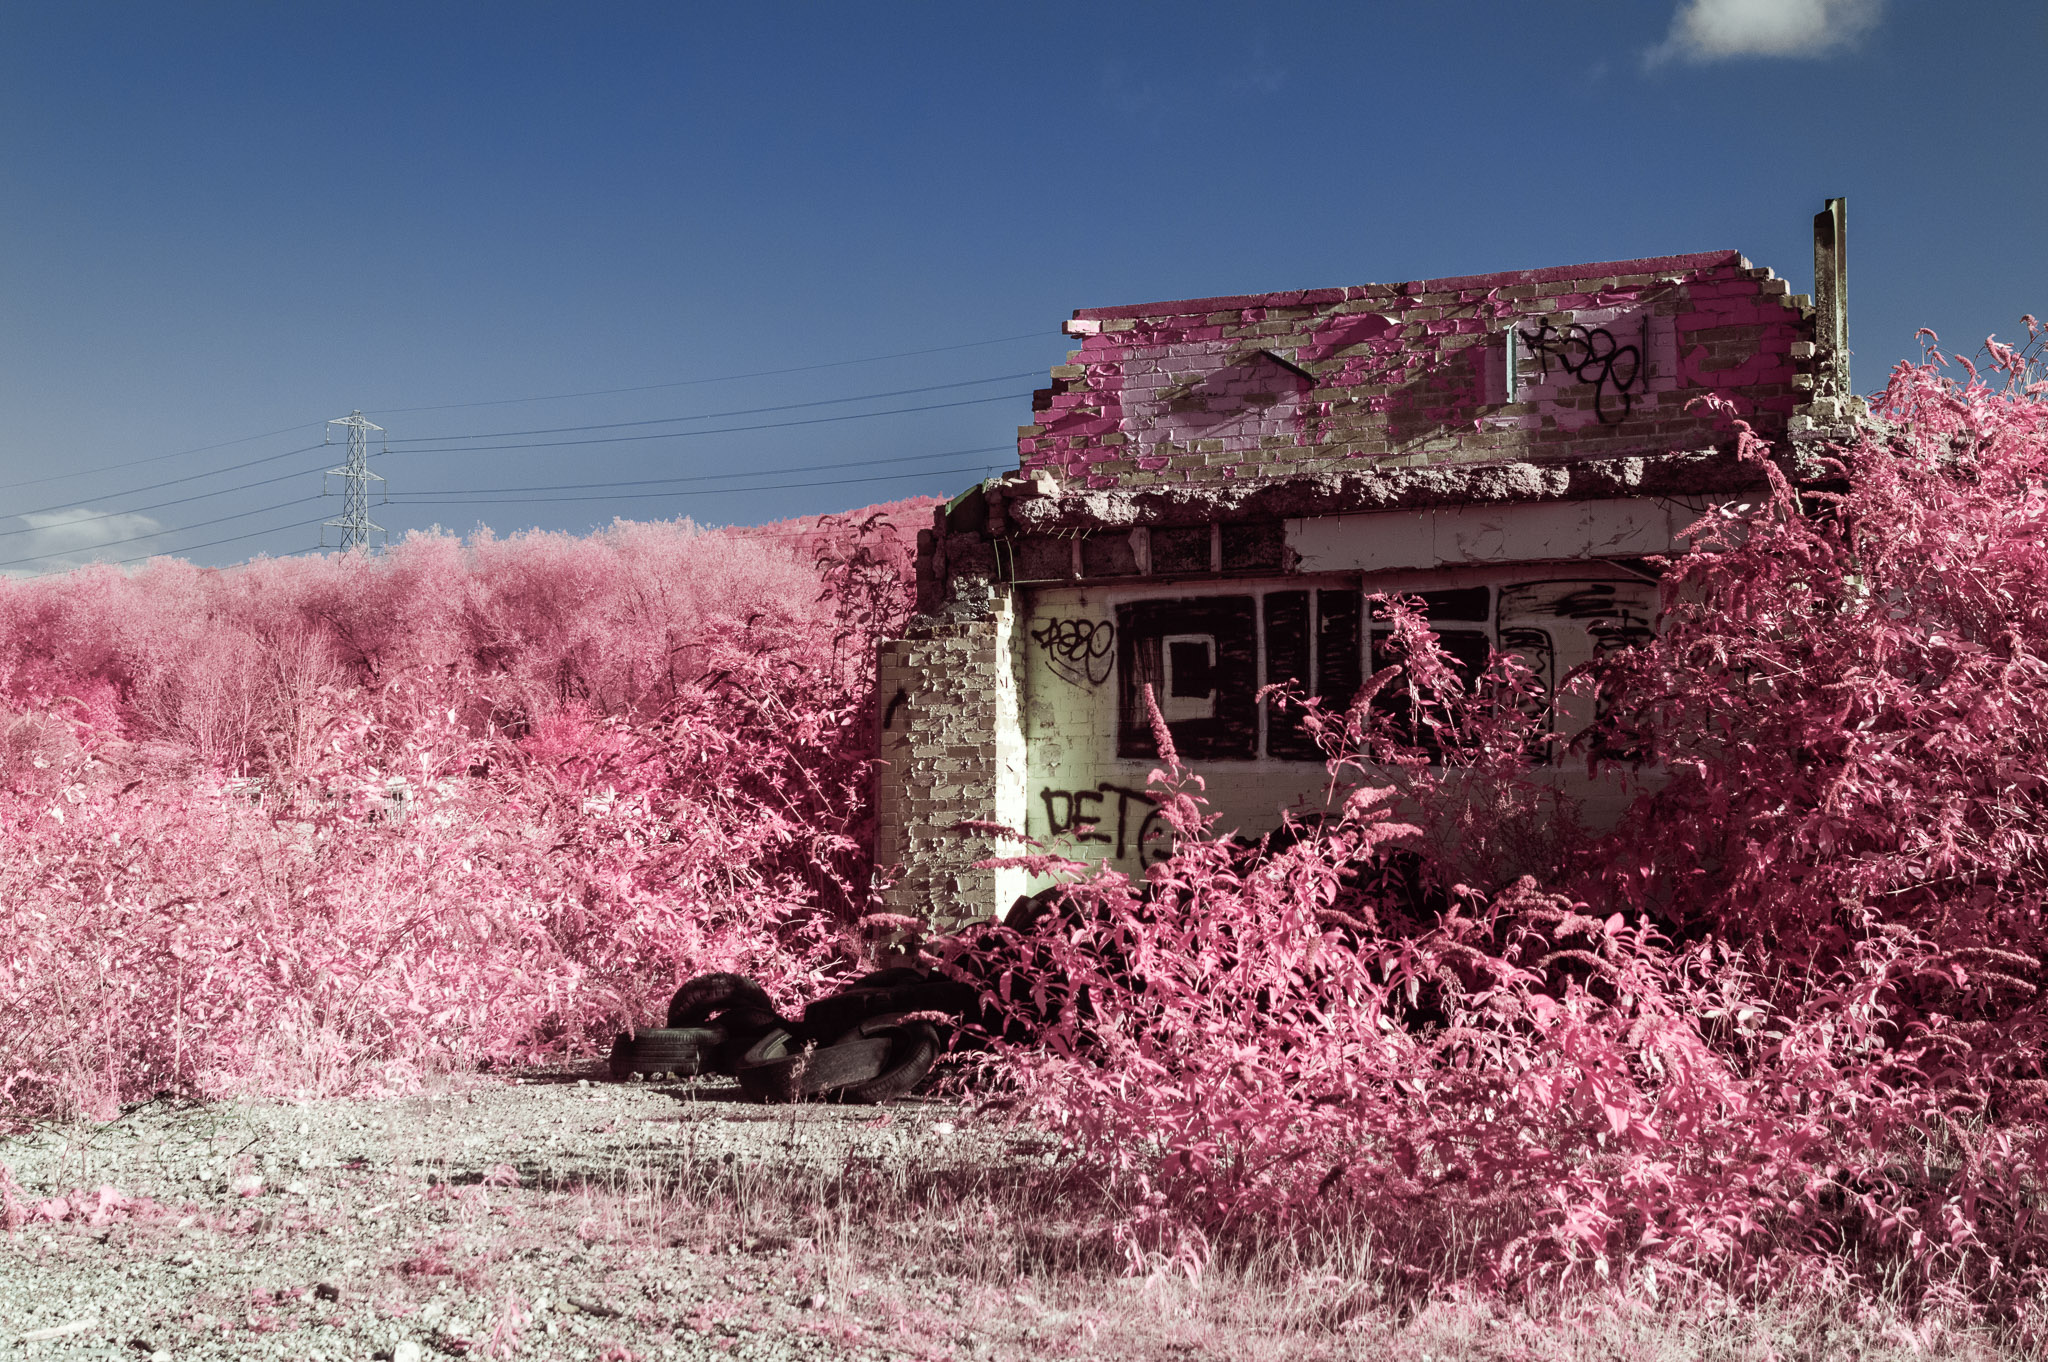 Kodak EIR Colour Infrared, Edgelands, Wasteland, Out of sight, Tyres, Fascia ©Jonny Sutton